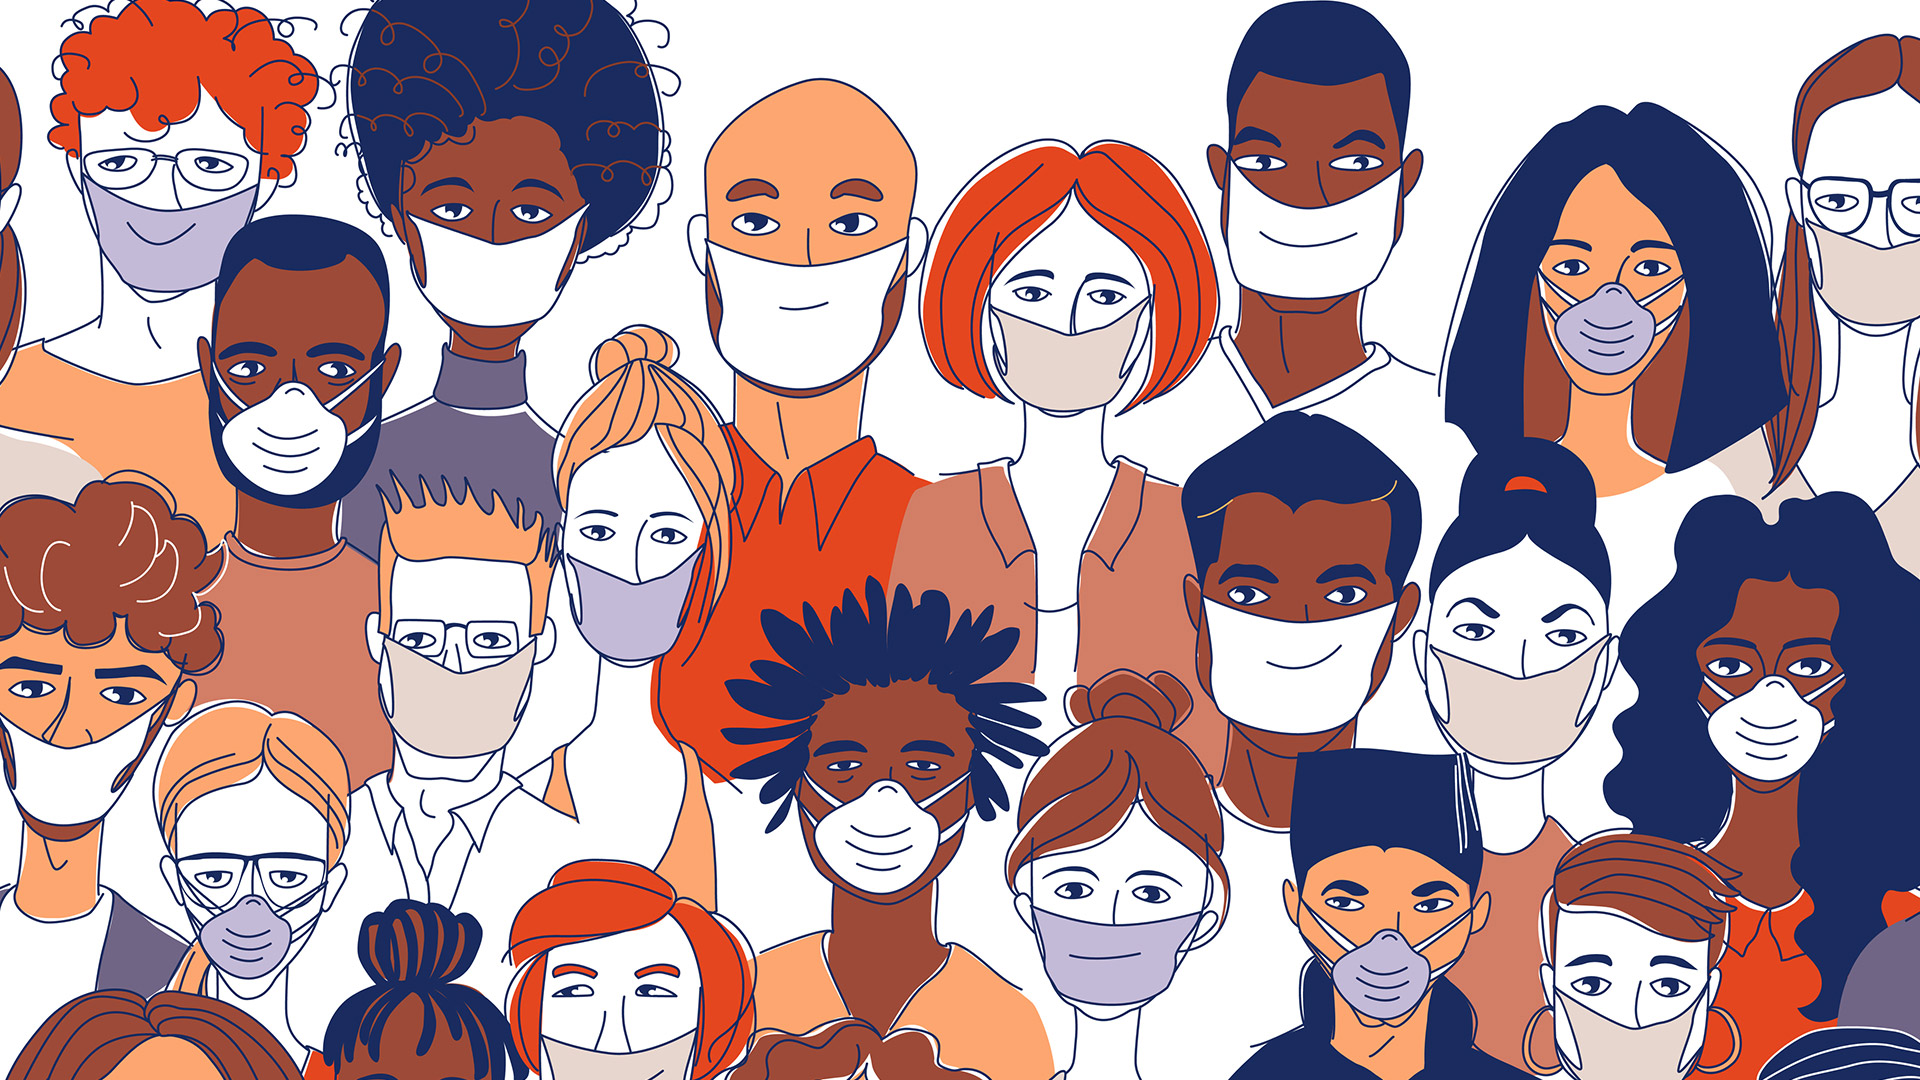 Know the difference between cloth face masks, N95 respirators and surgical masks